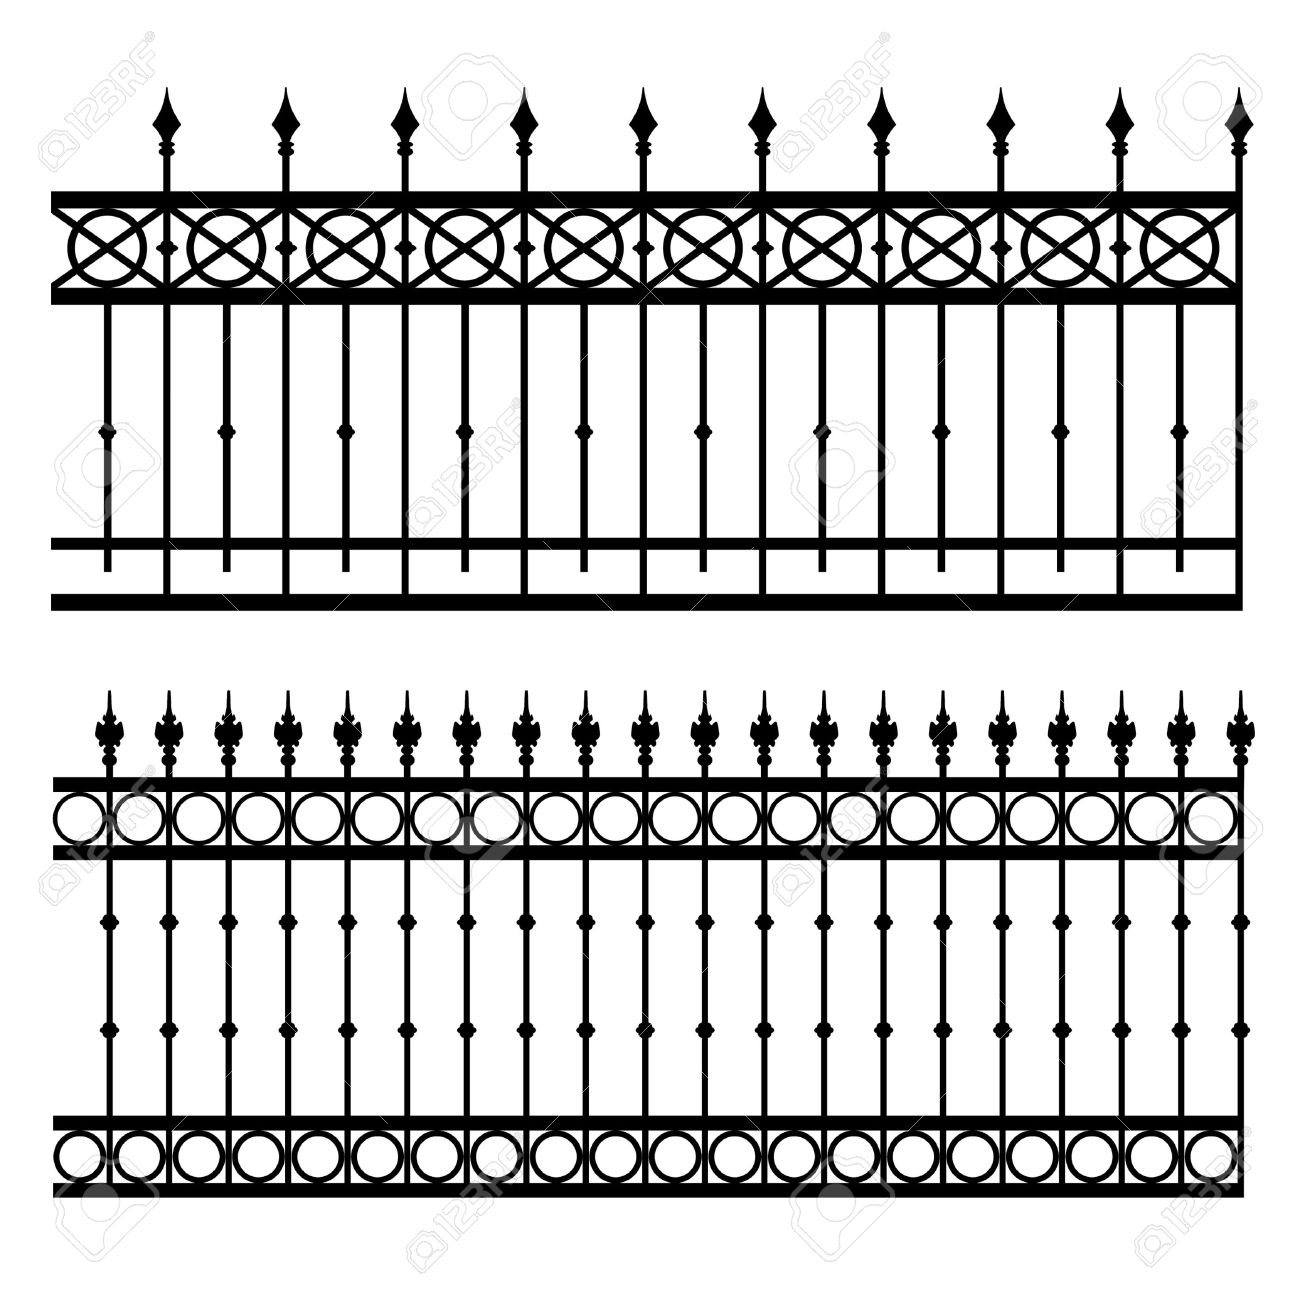 Gate clipart gothic 17513848 17513848 vector Image illustration